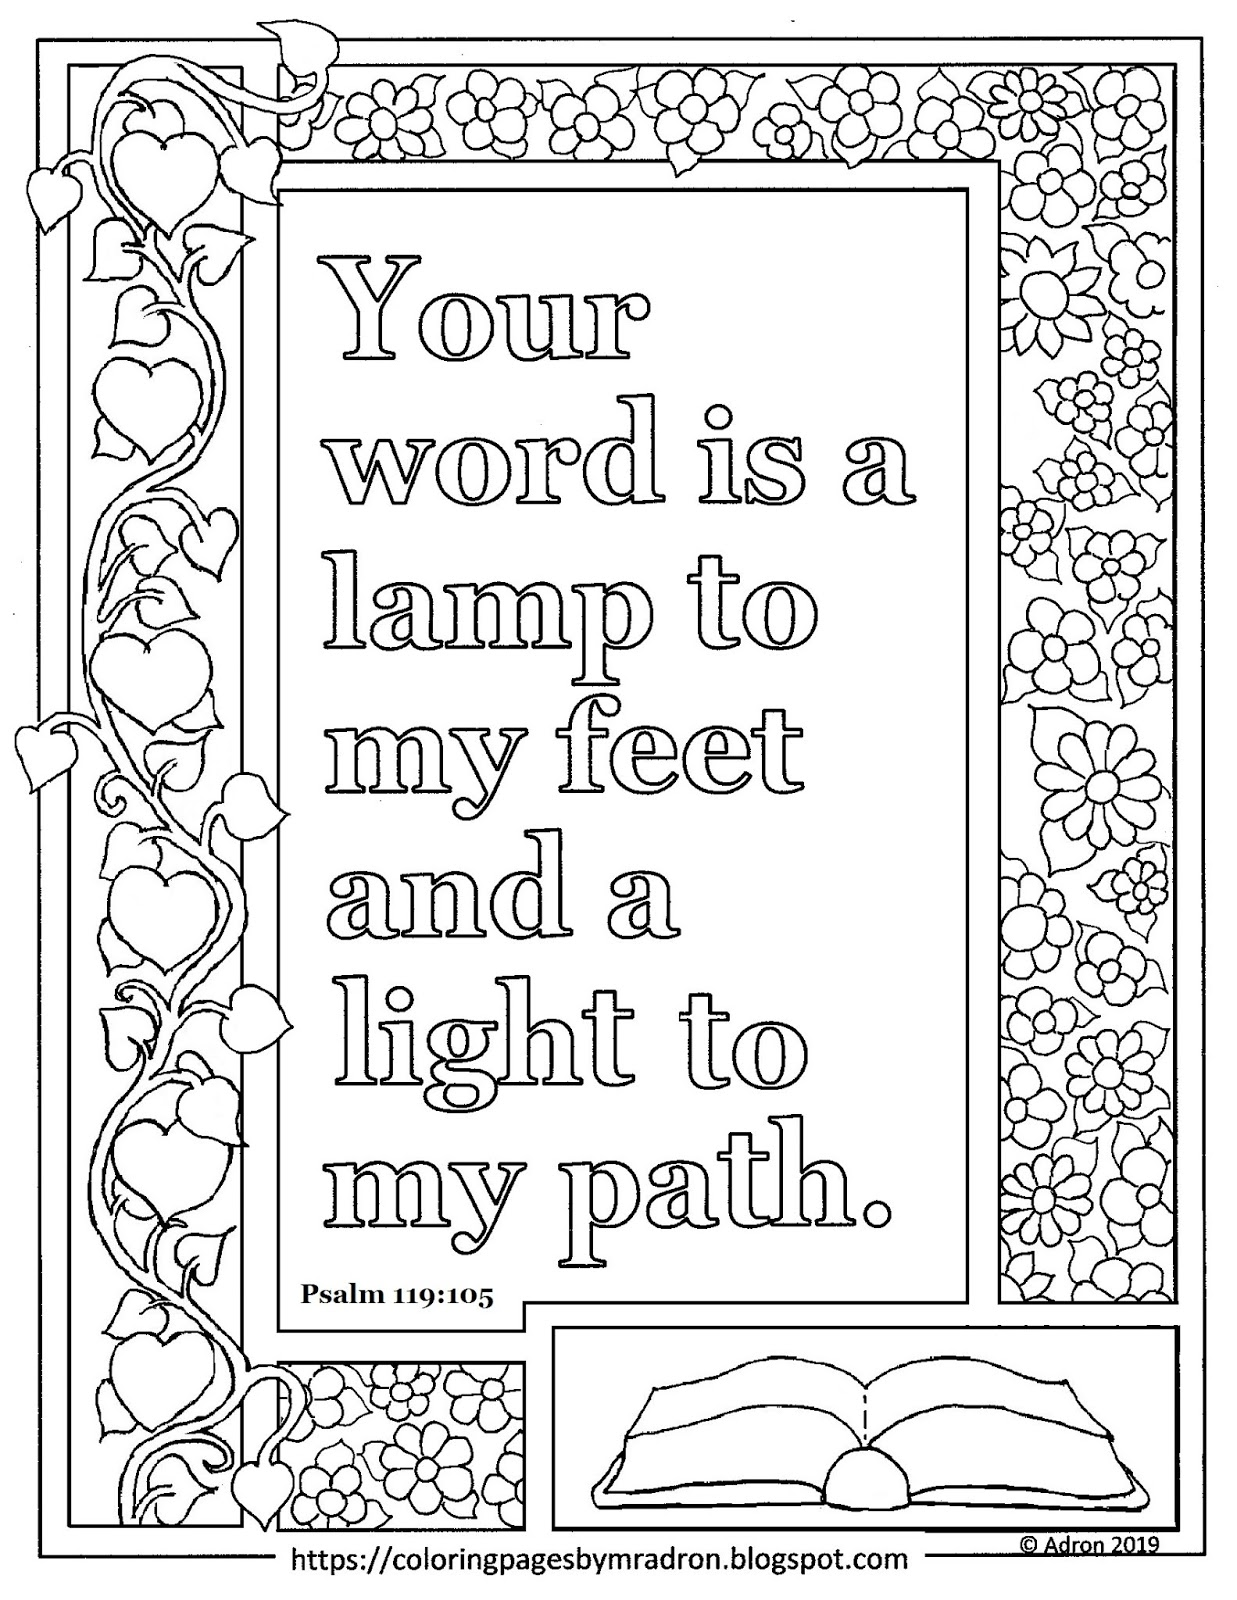 psalms 119 105 coloring page psalm 119 105 free coloring pages 119 105 page psalms coloring